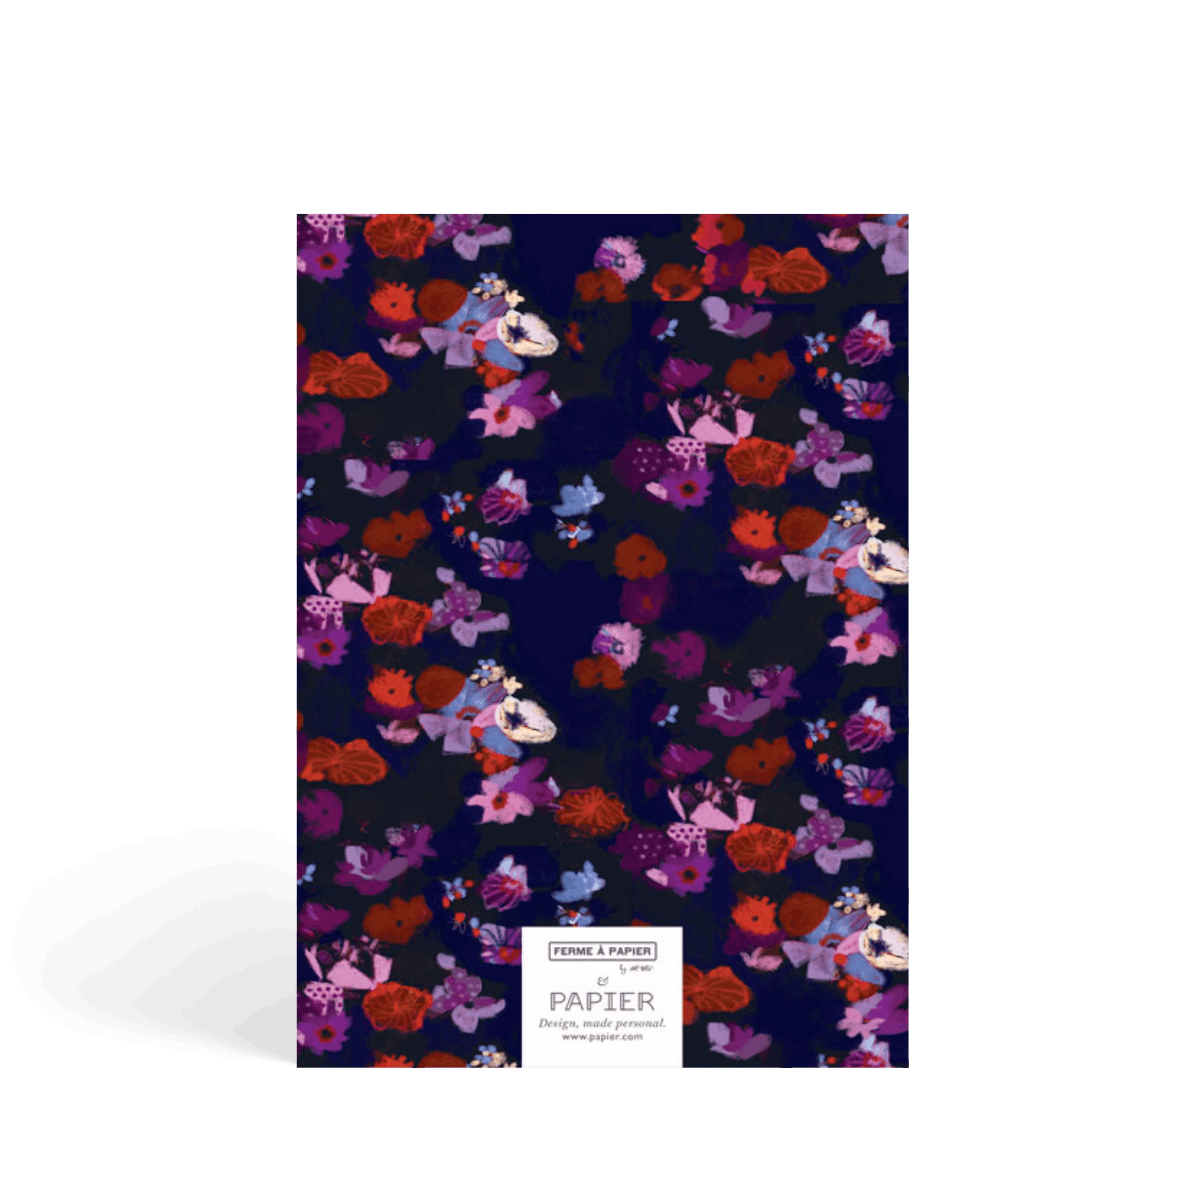 Https%3a%2f%2fwww.papier.com%2fproduct image%2f29700%2f5%2fpurple floral 7488 arriere 1508429658.png?ixlib=rb 1.1